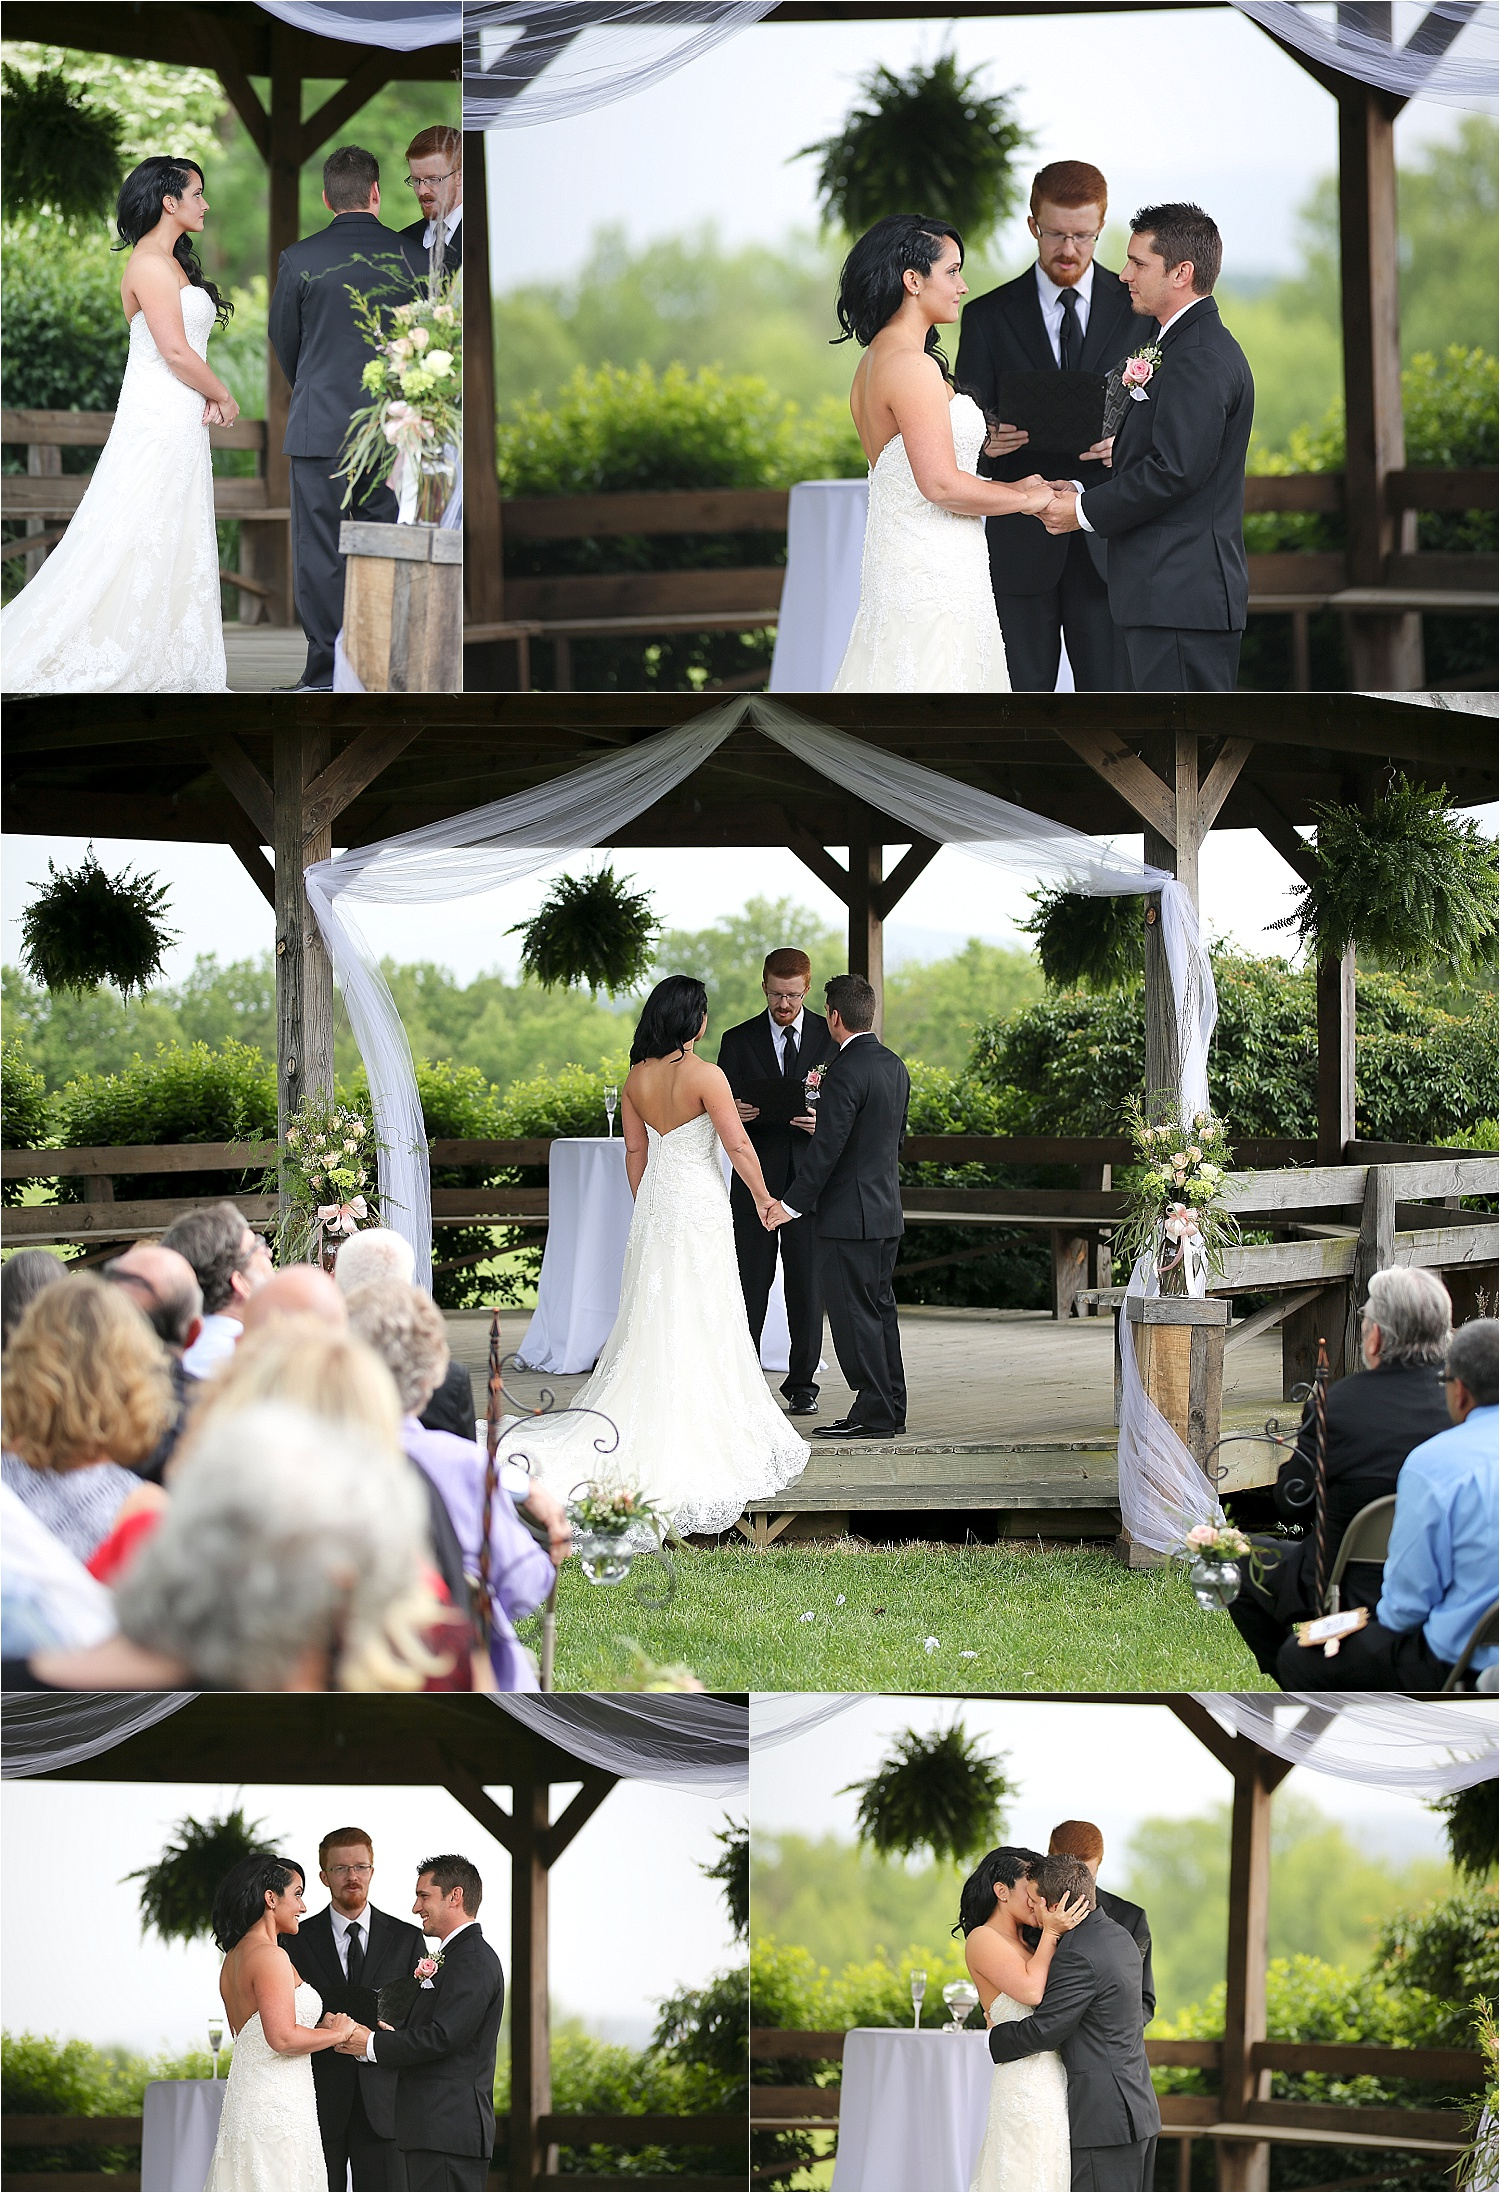 Boxtree-Lodge-Wedding-Photos-Roanoke-Wedding-Photographer_0018.jpg